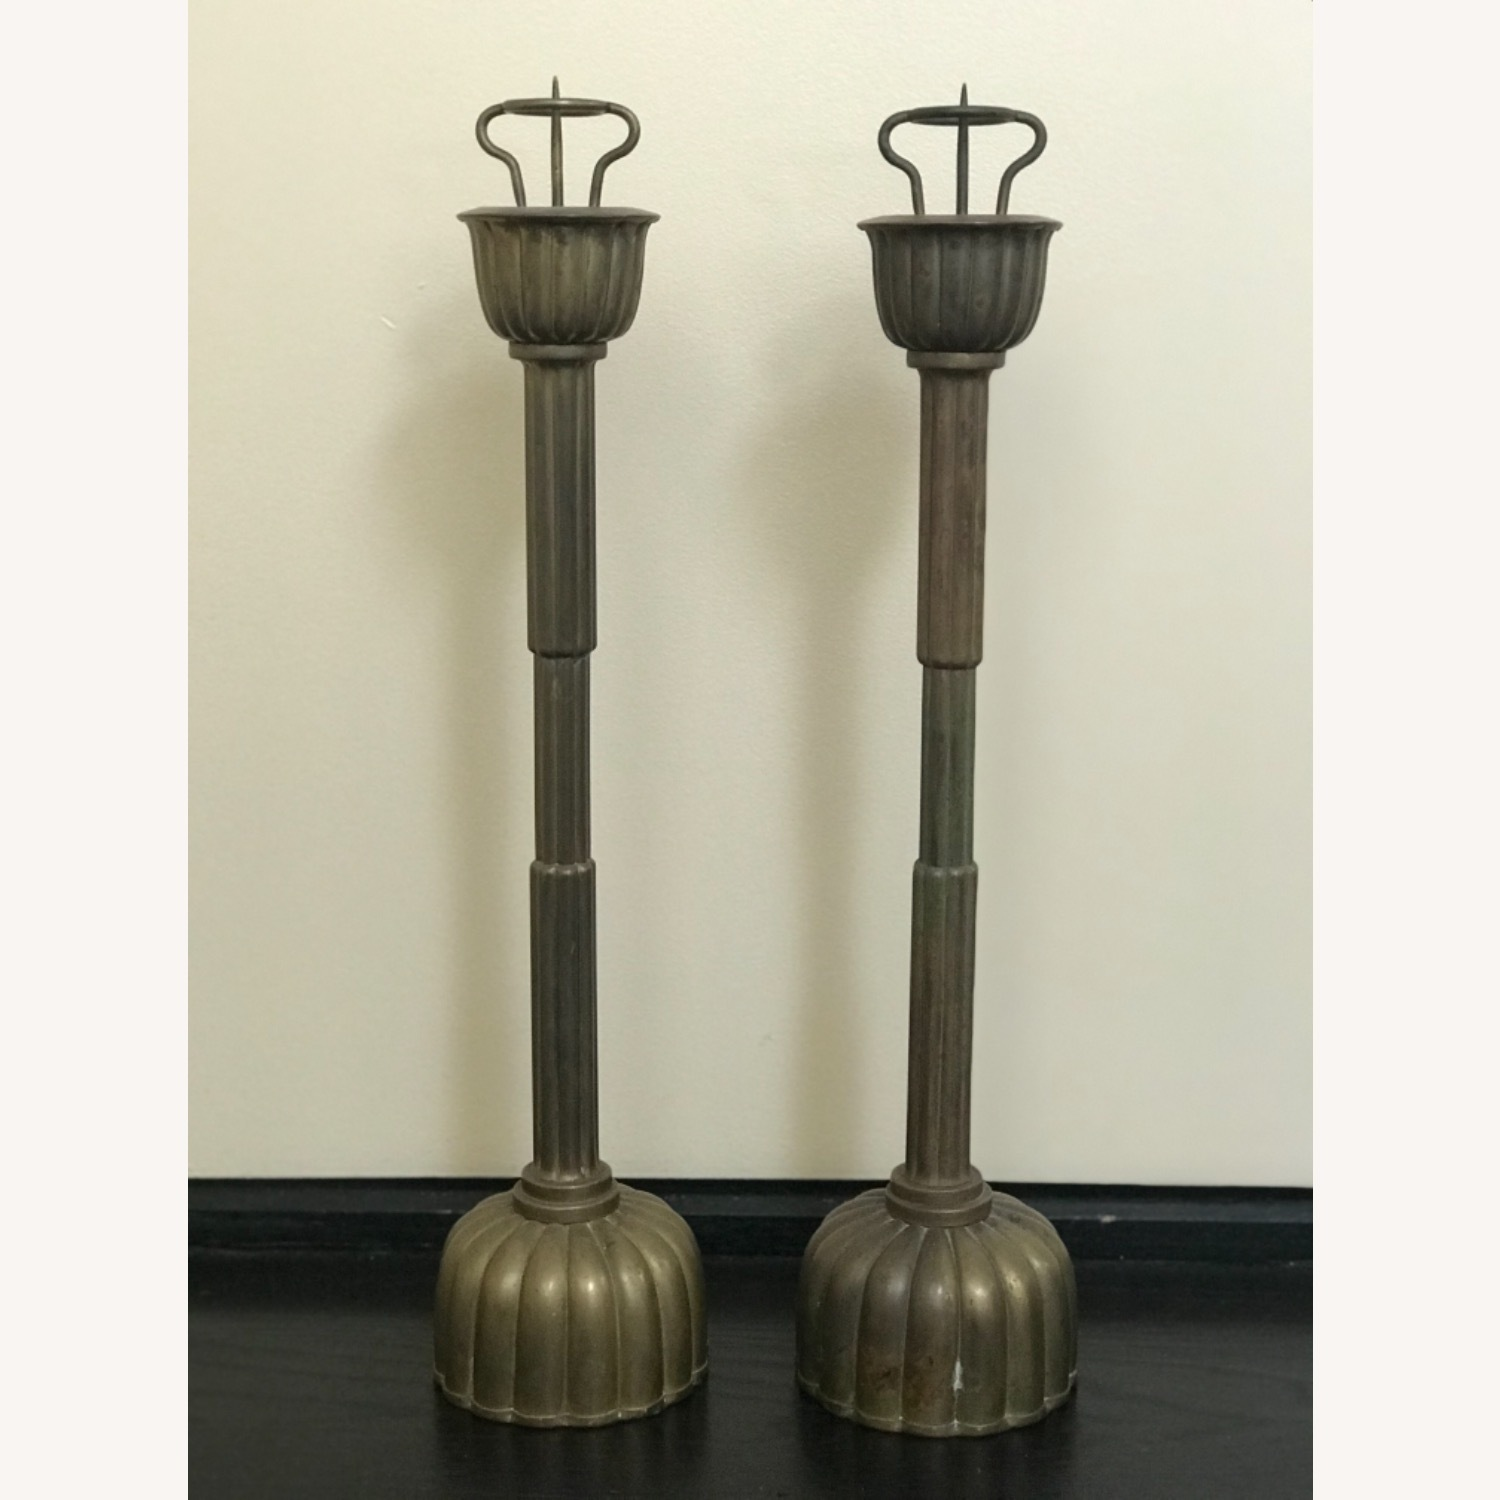 Antique Japanese Candlestick Holders - image-1